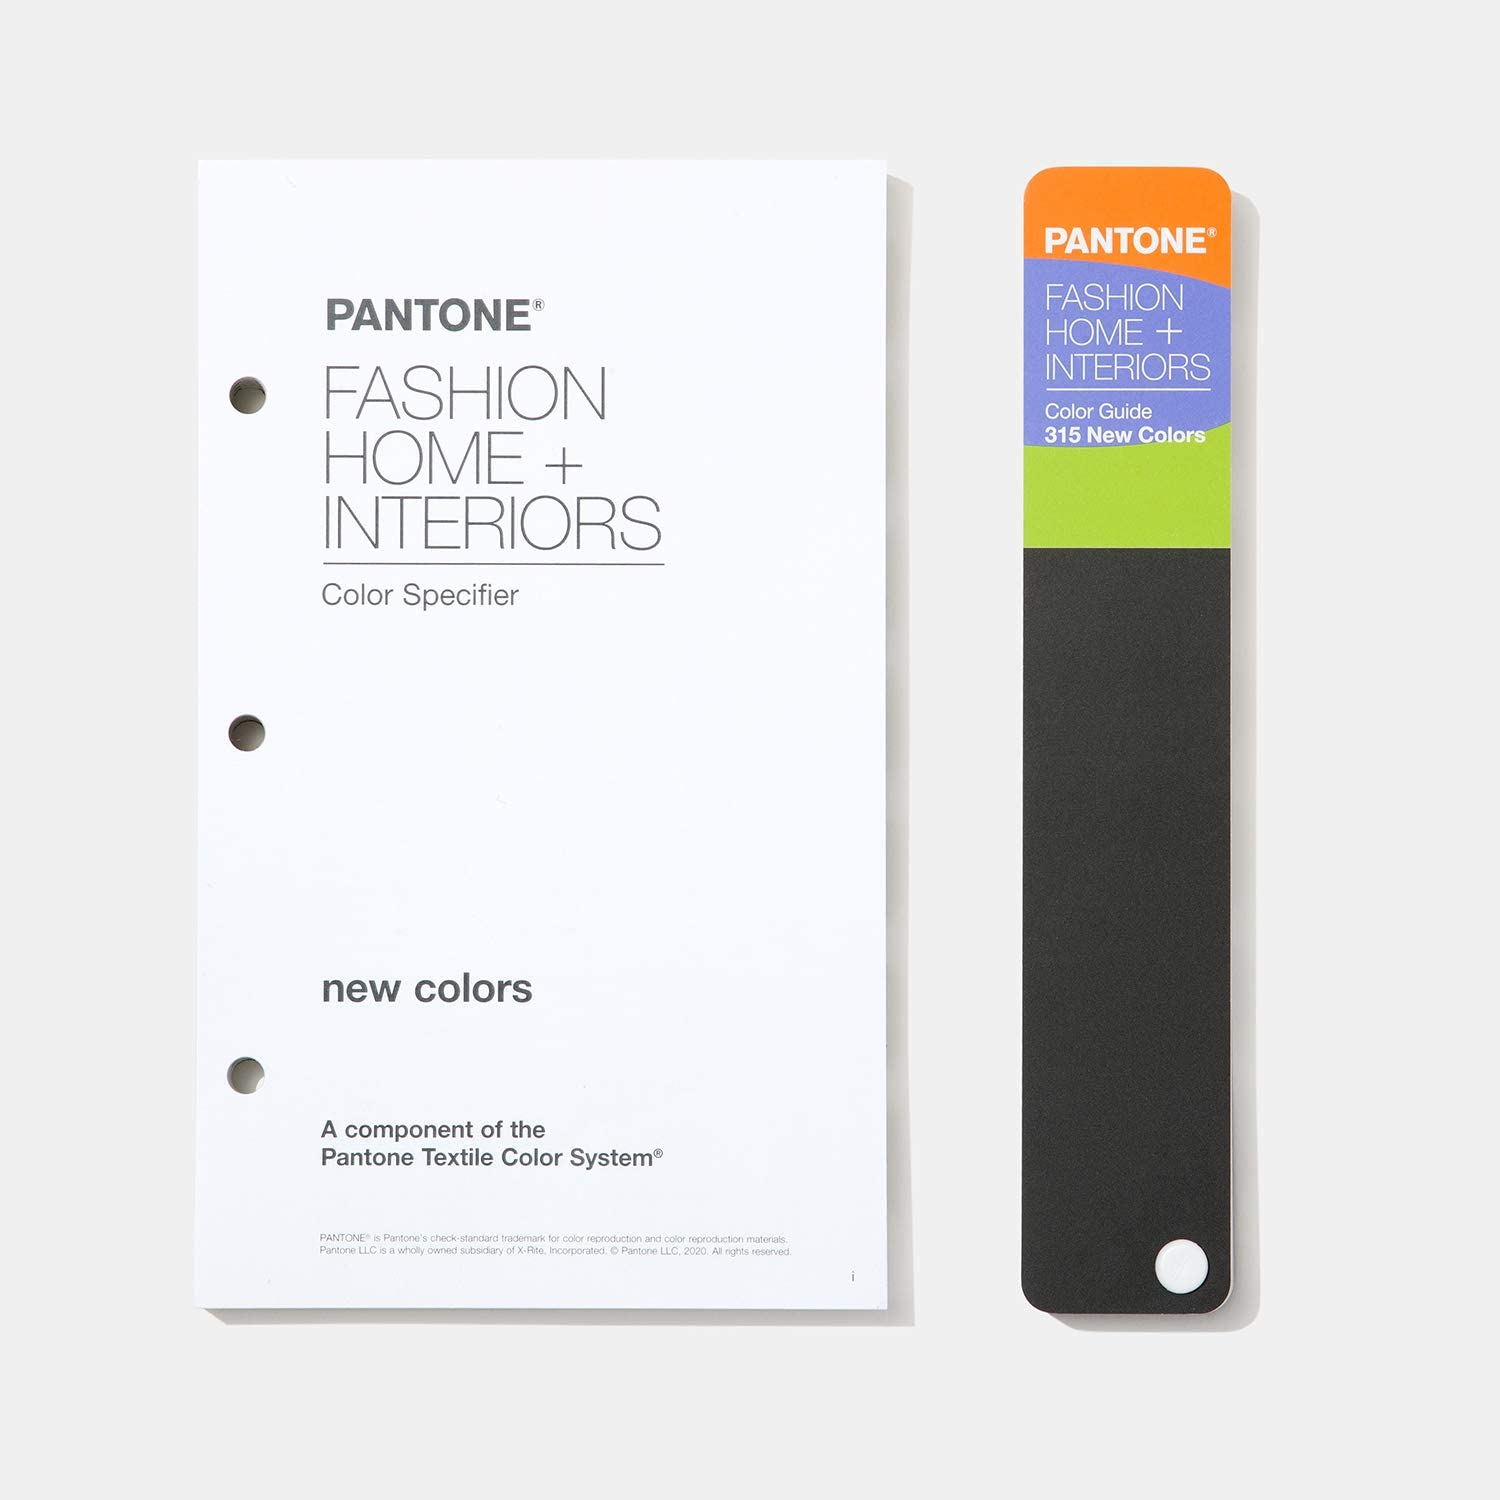 Pantone Color Specifier + Guide Supplement for Fashion, Home & Interiors - 2020 Edition